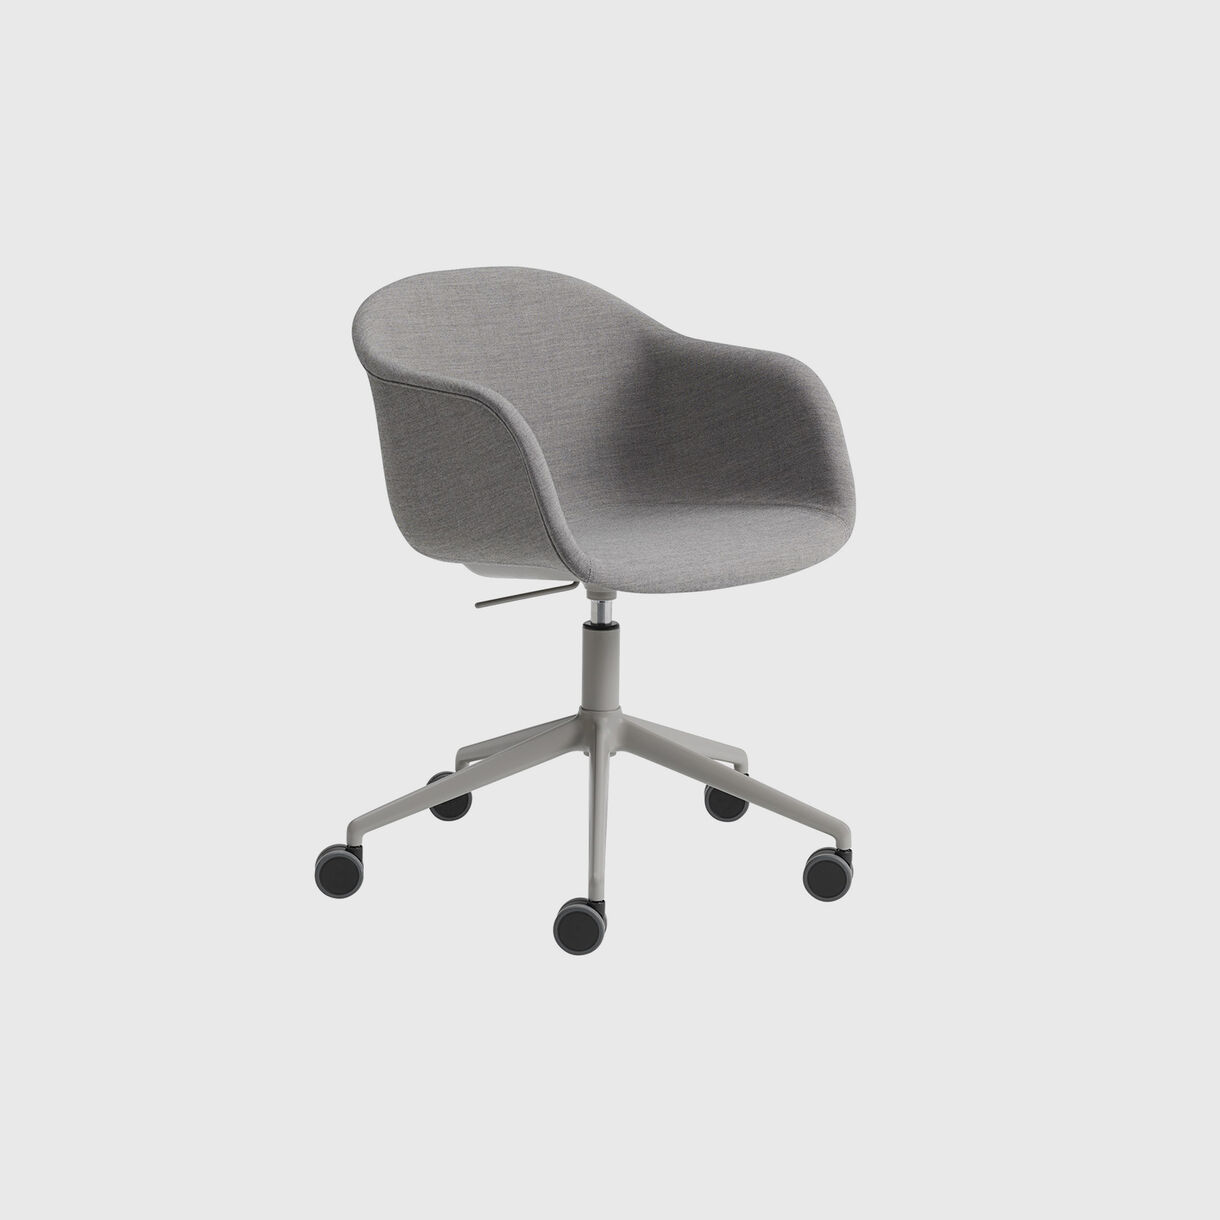 Fiber Armchair Upholstered, Remix 133 & Grey, Swivel Base with Castors & Gas Lift, Grey